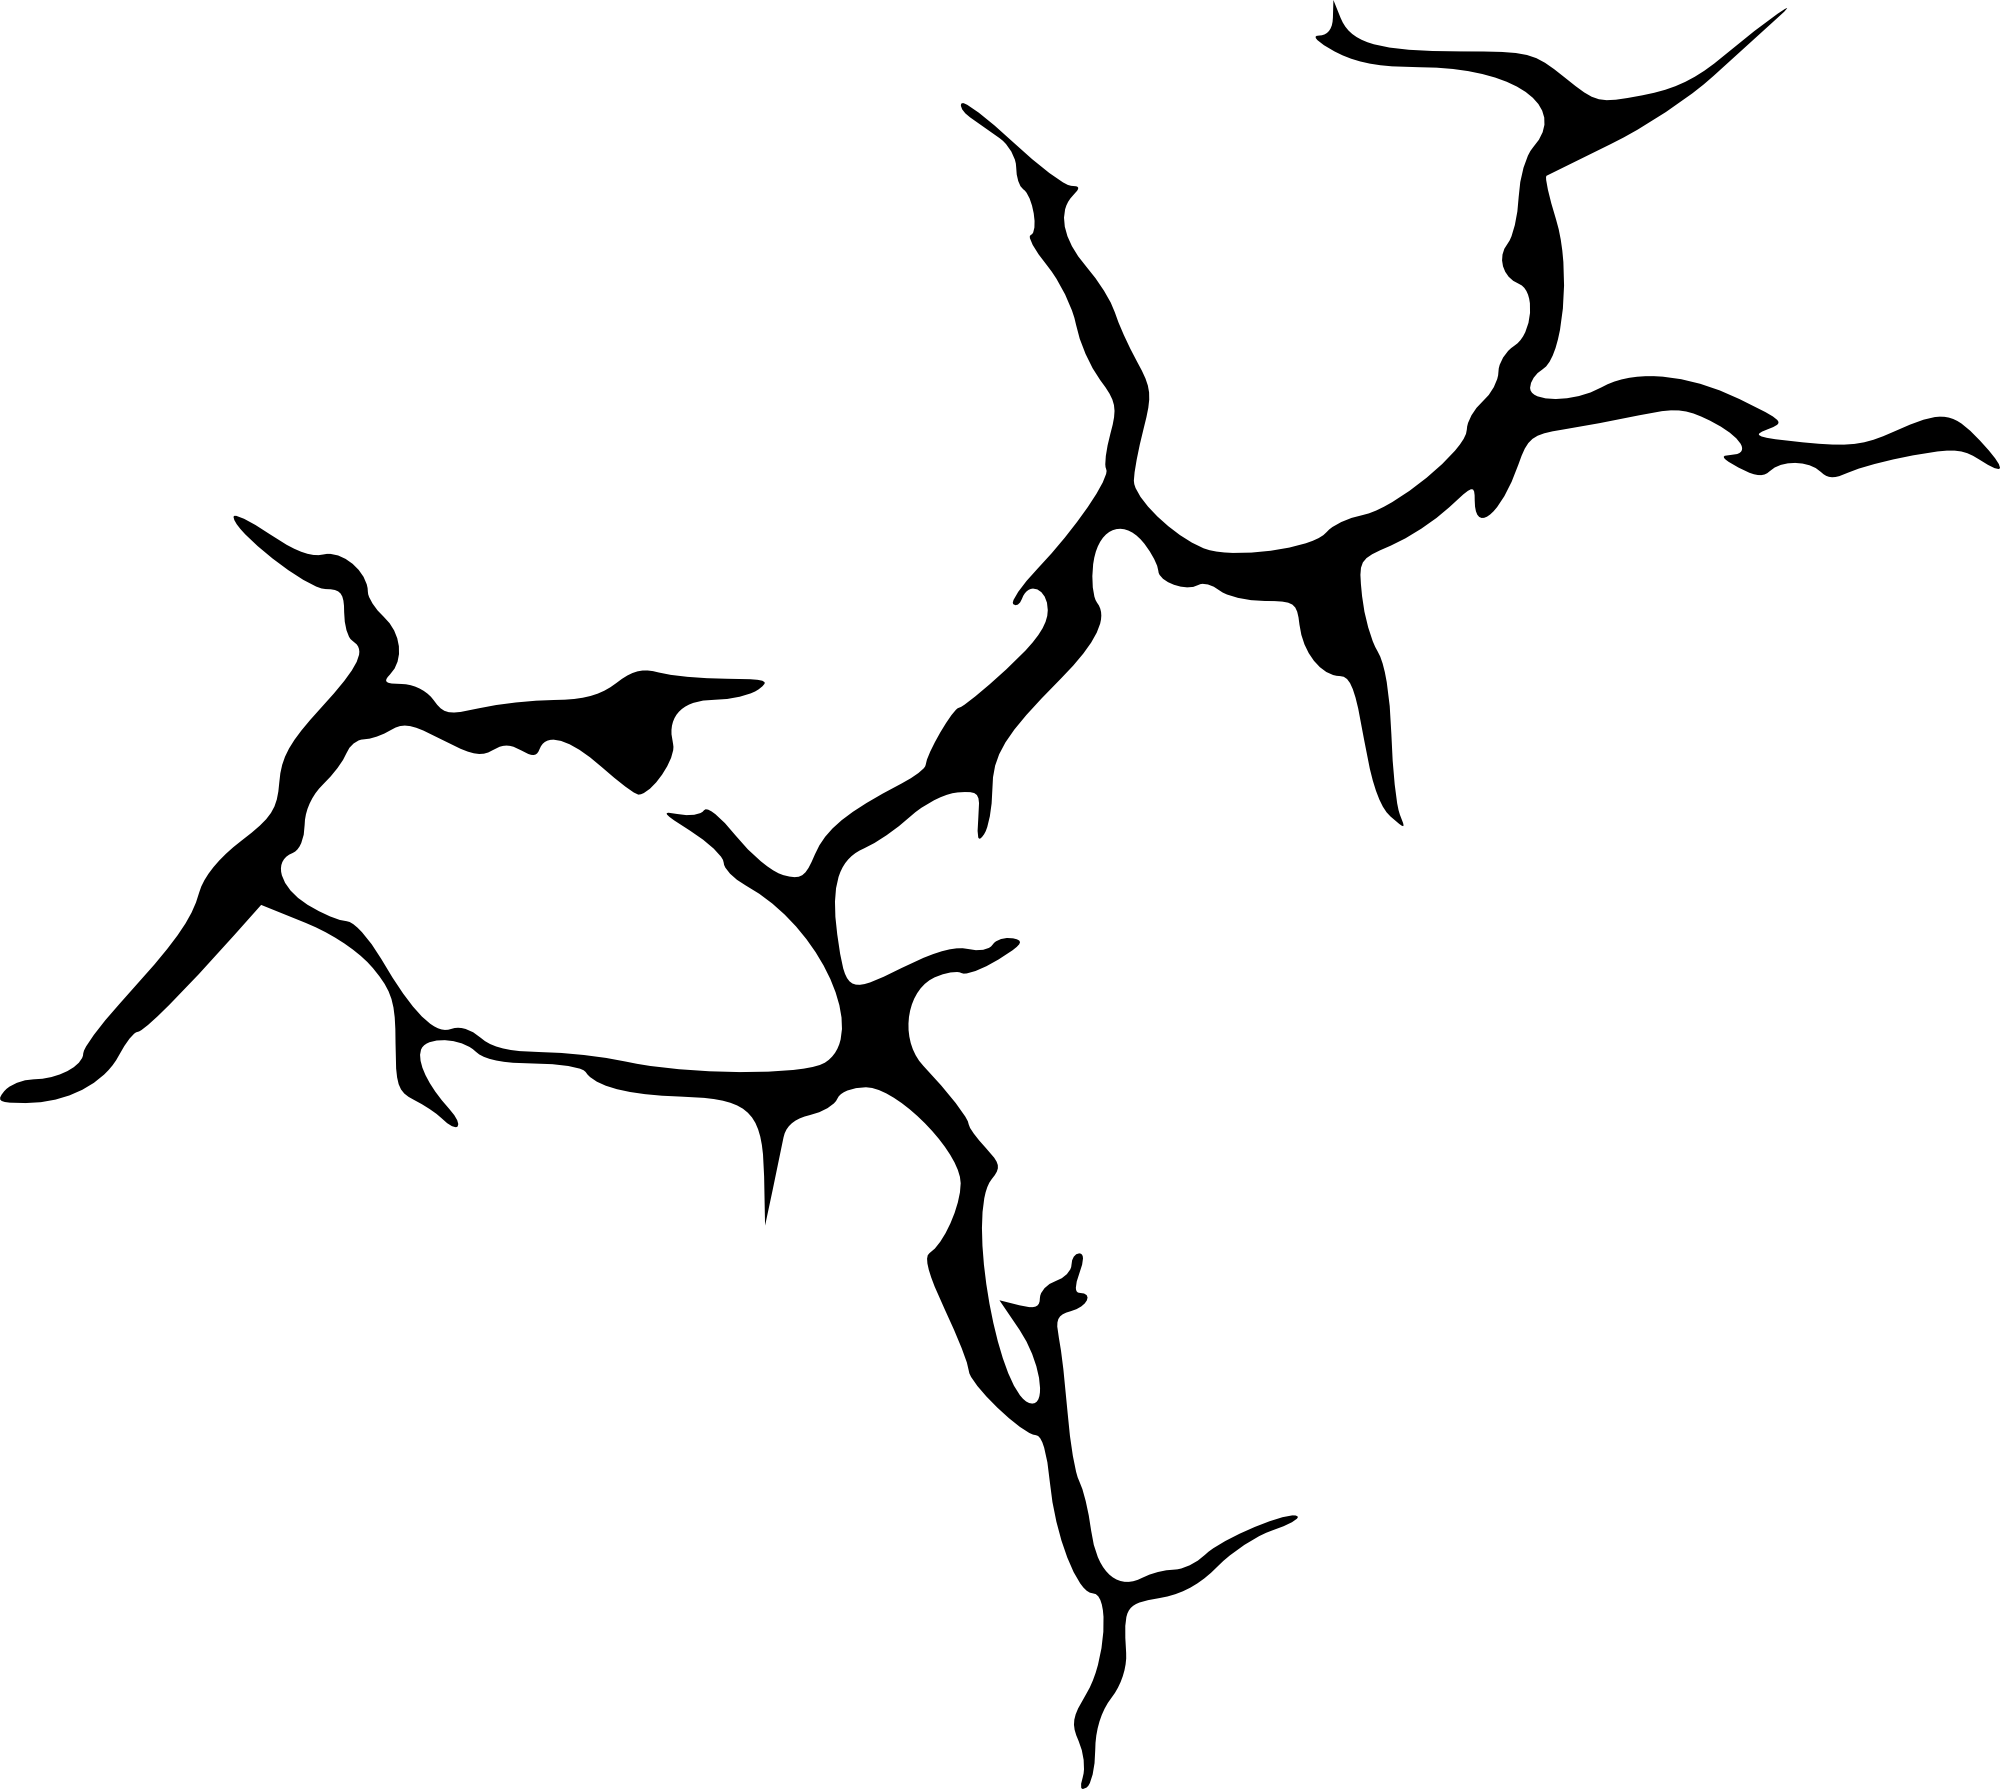 crack vector png